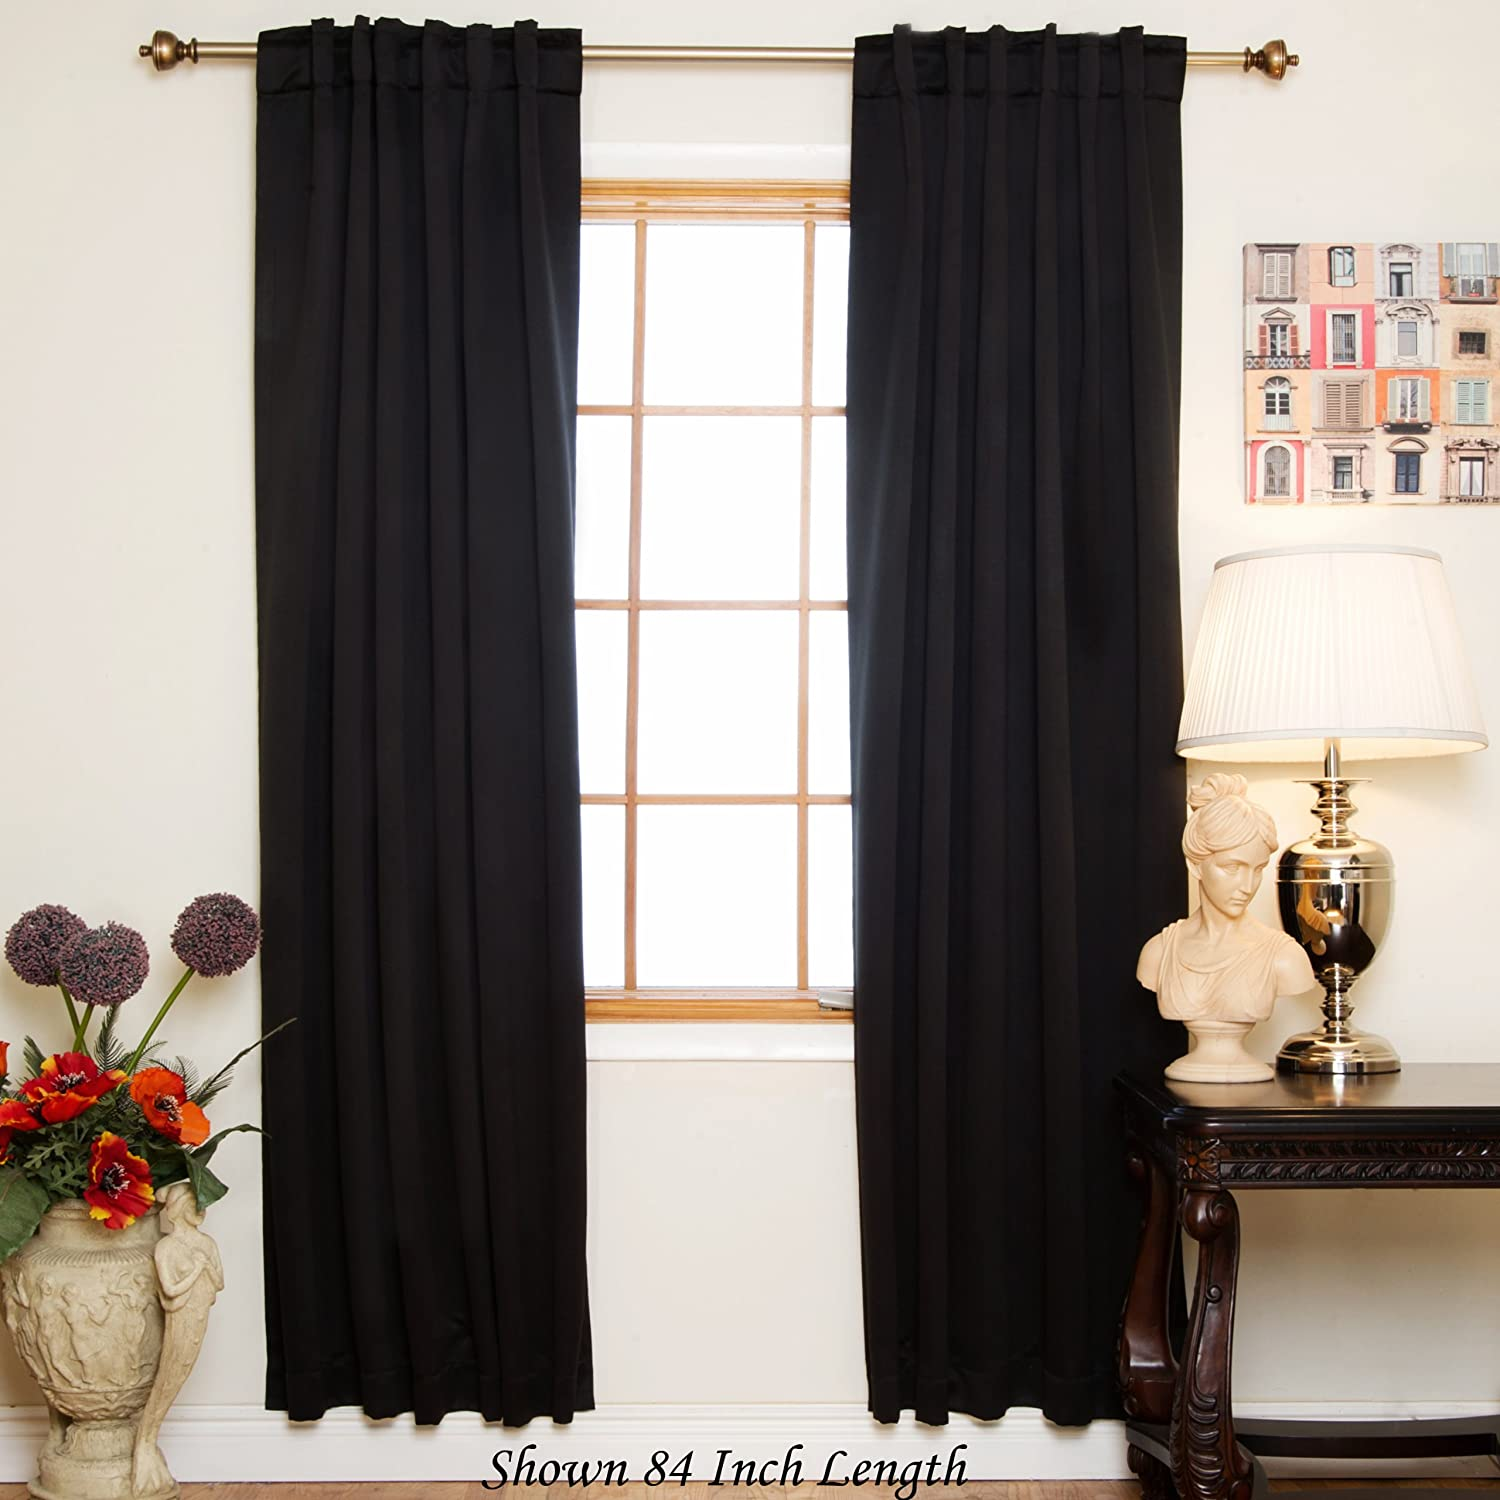 Amazon Blackout Curtain Black Rod Pocket Energy Saving Thermal Insulated 108 Inch Length Pair Home Kitchen